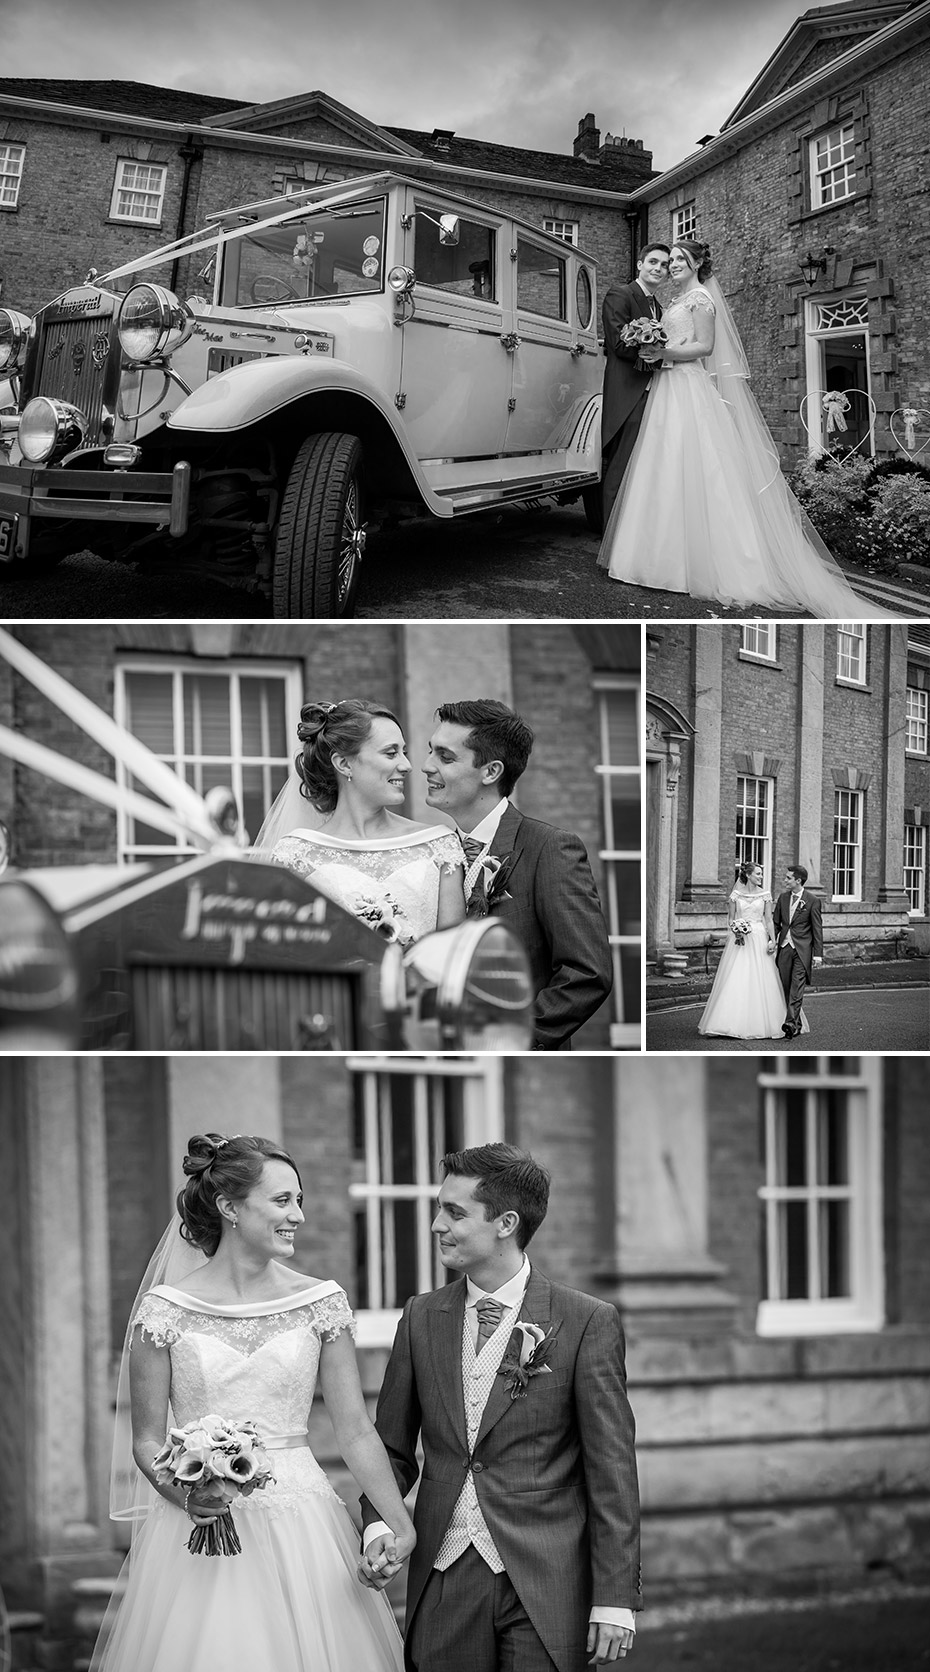 Mottram Hall Weddings in Cheshire